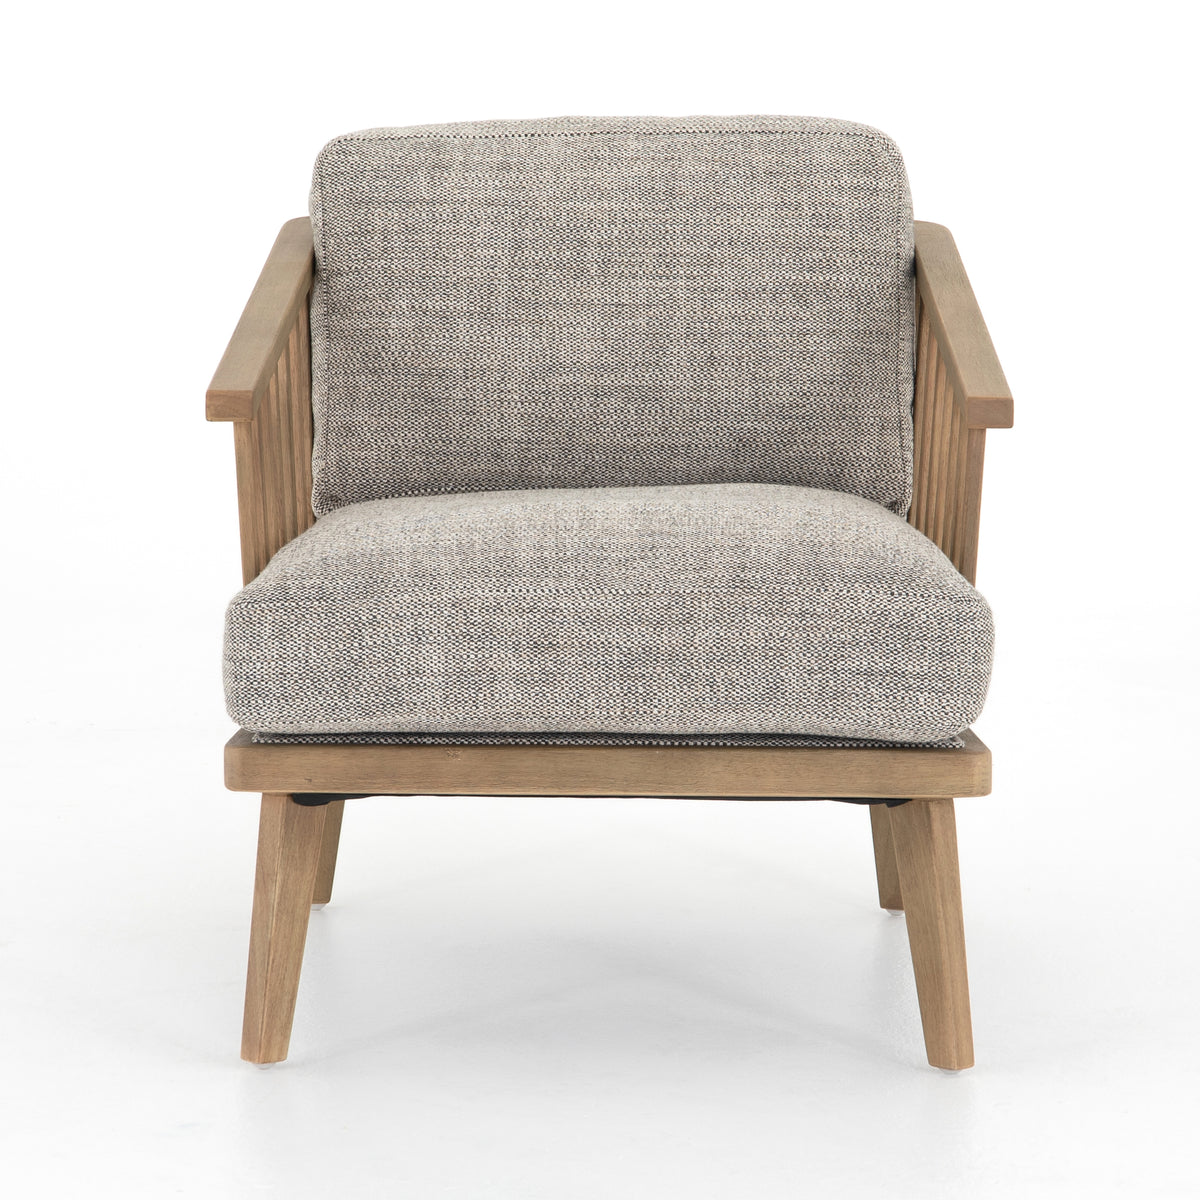 Load image into Gallery viewer, Magnolia Chair Coal